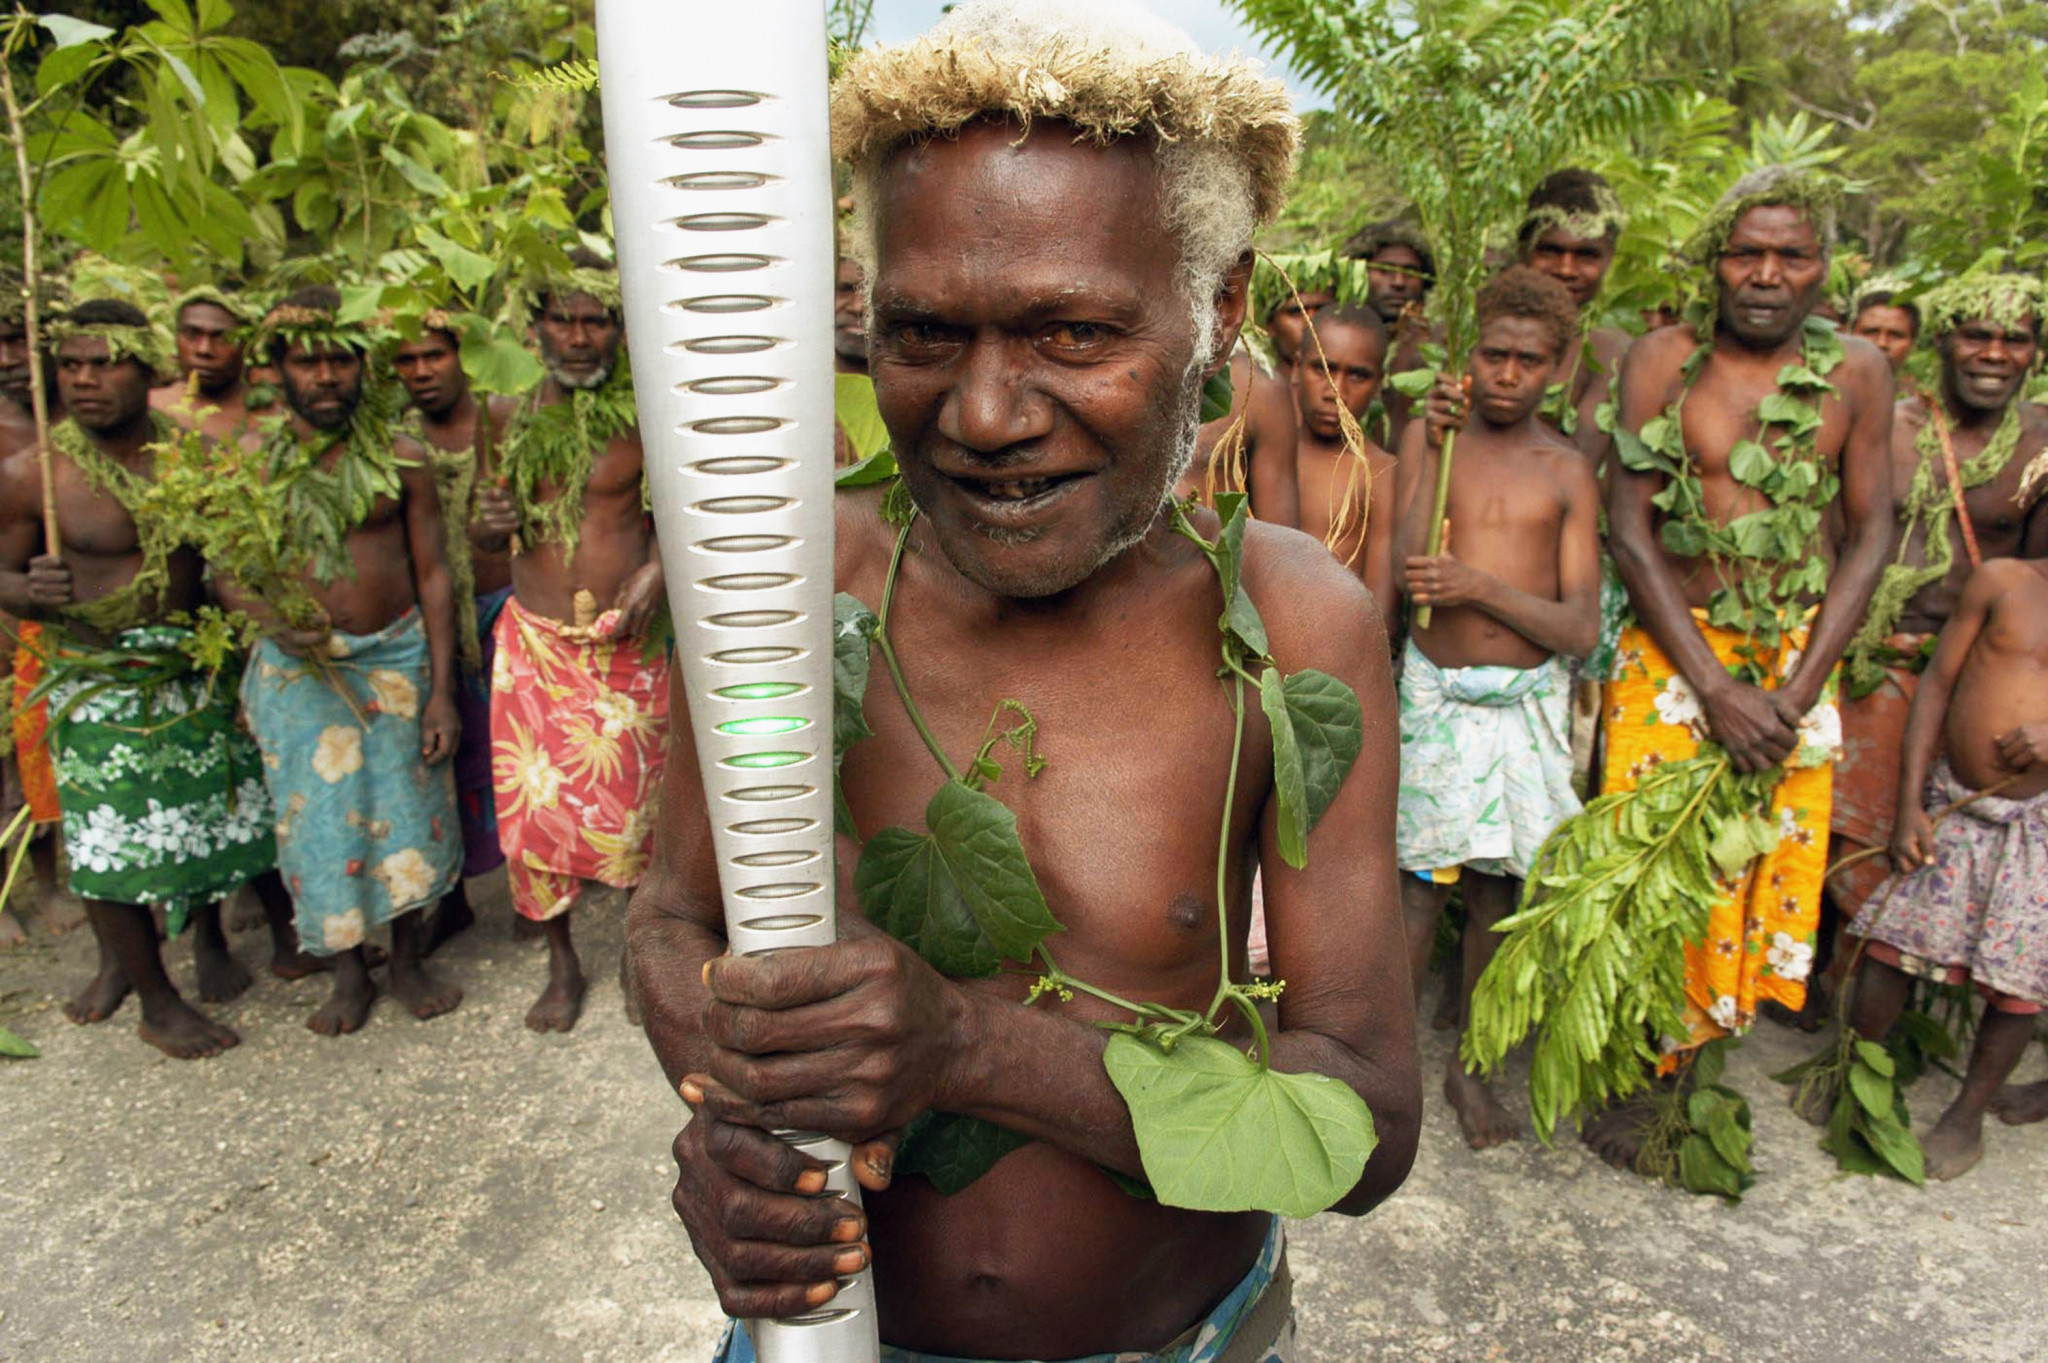 Chief Lobu Joe of Tanna Island welcomes the Melbourne 2006 Queen's Baton to his village in Vanuatu - demonstrating the diversity of the relay ©Getty Images